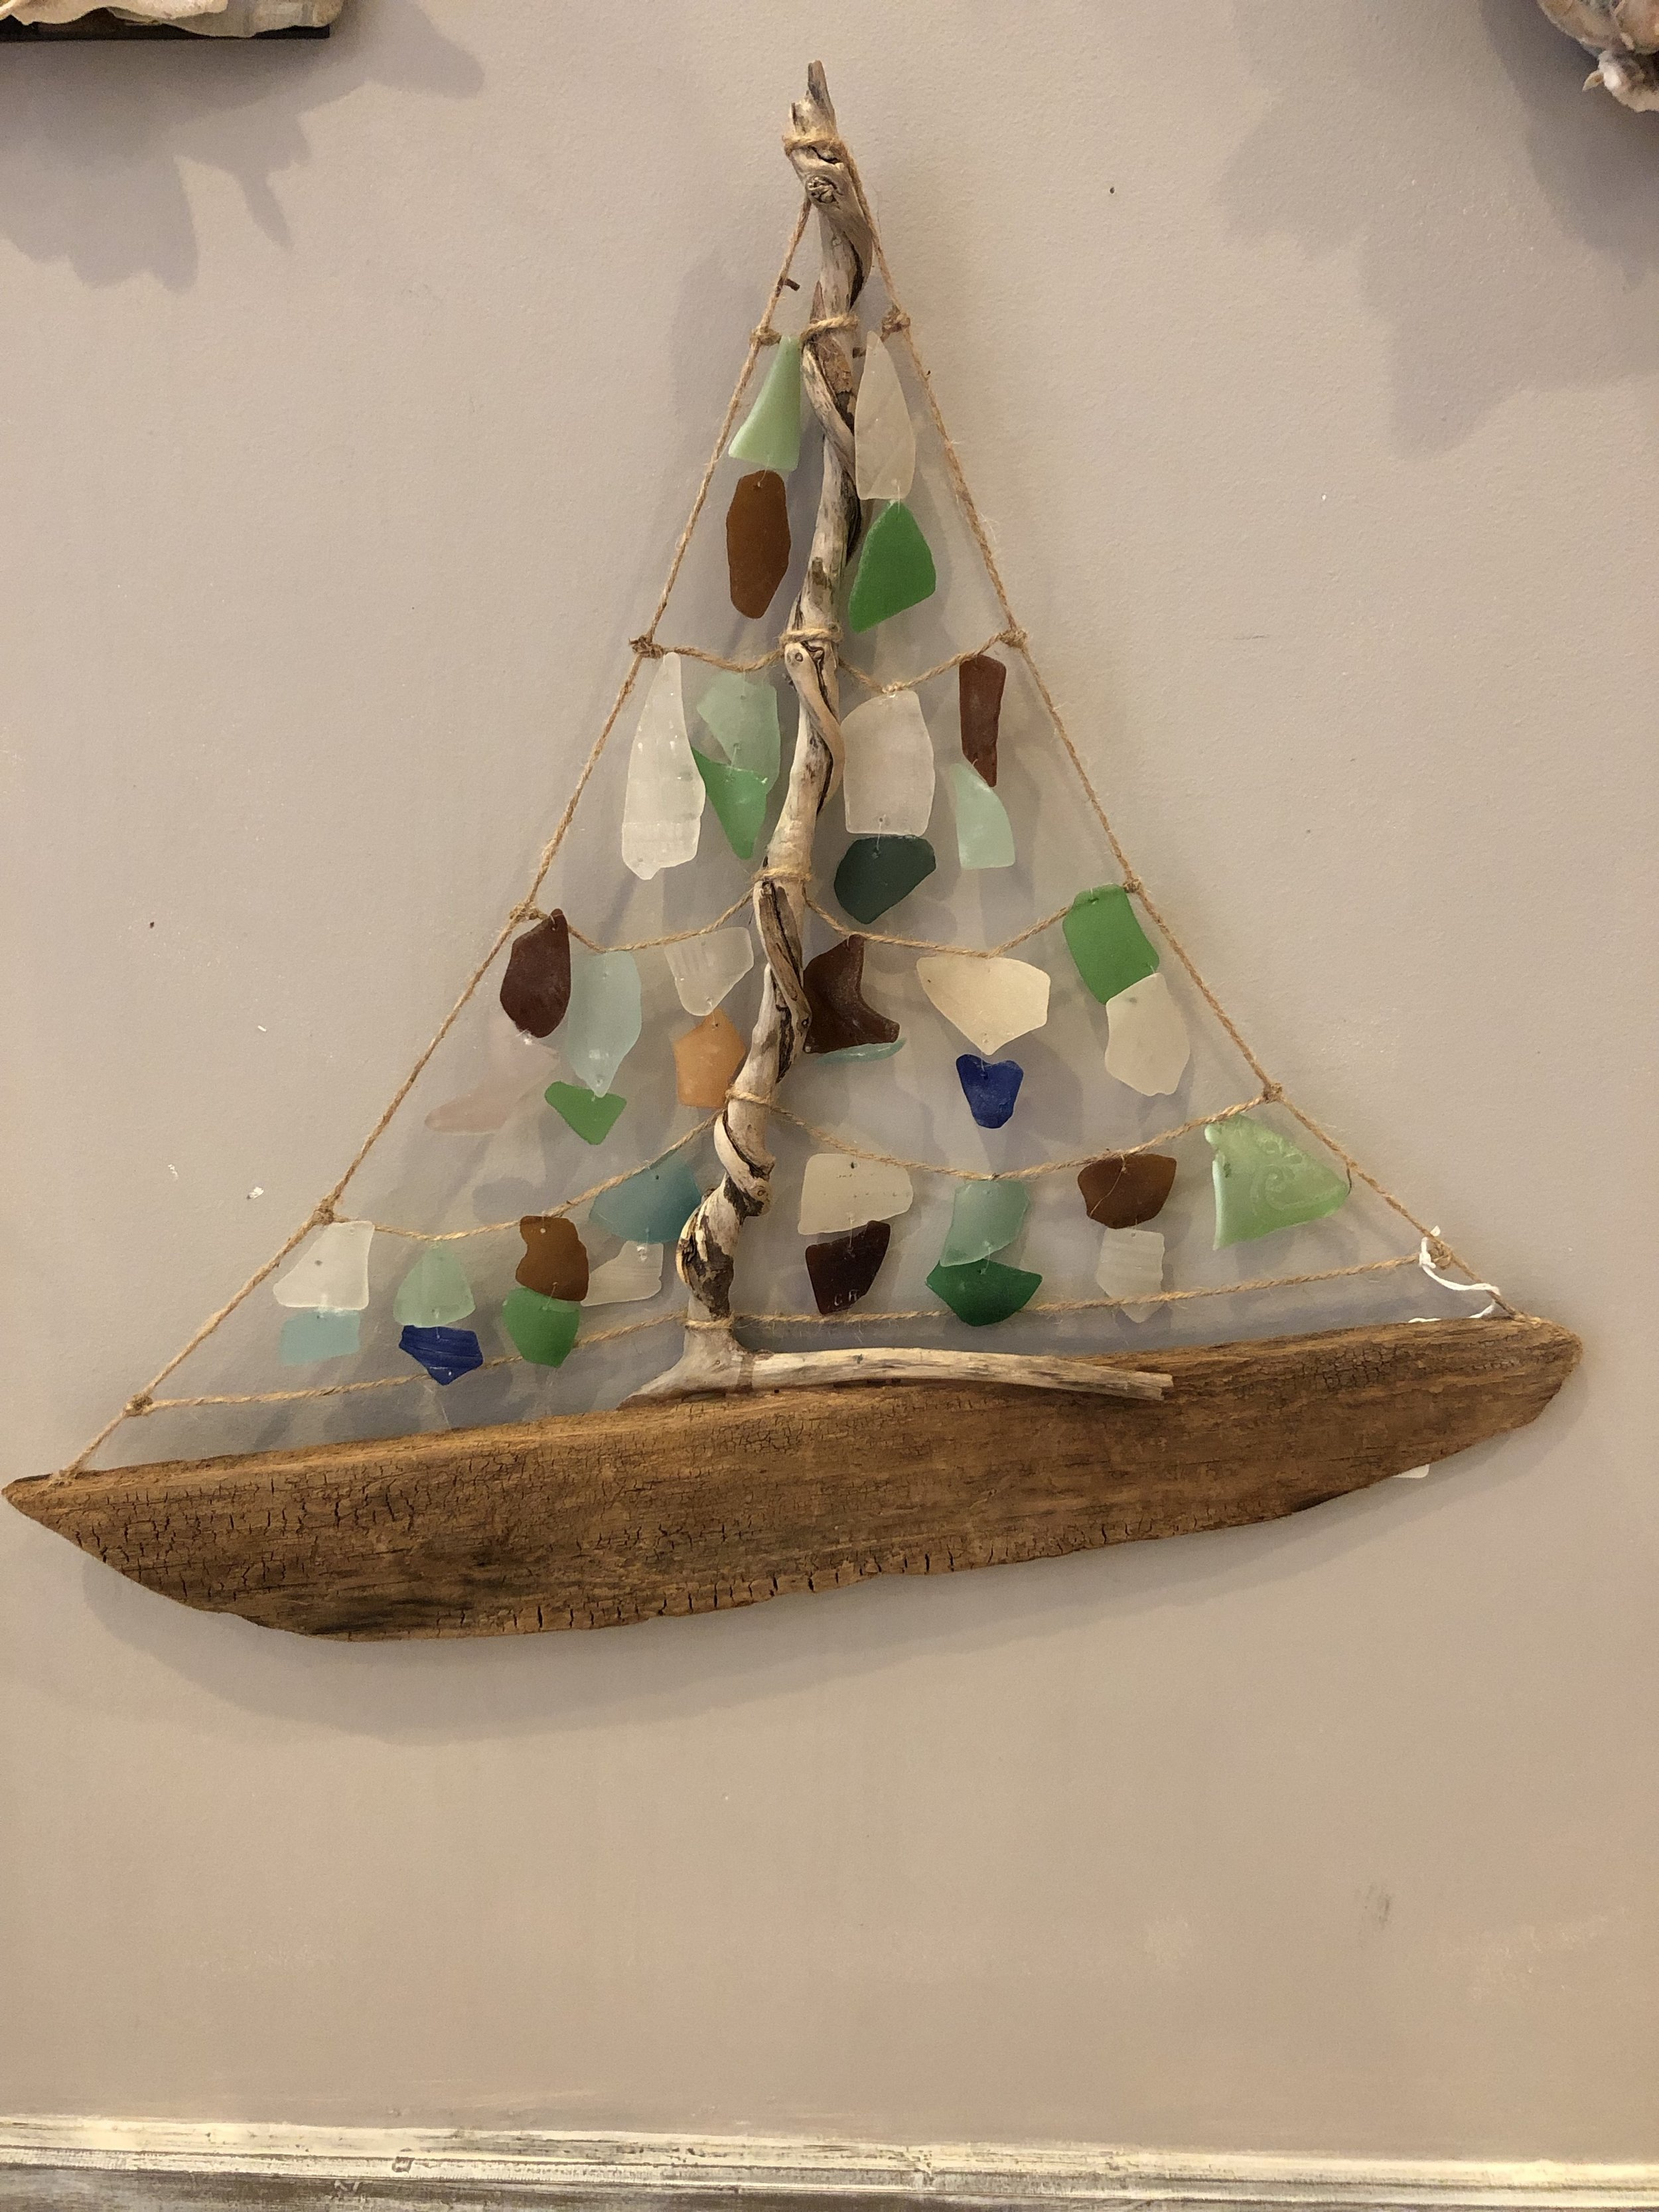 Sea Shore Art by Kym - Unique Items made from Shoreline findings!